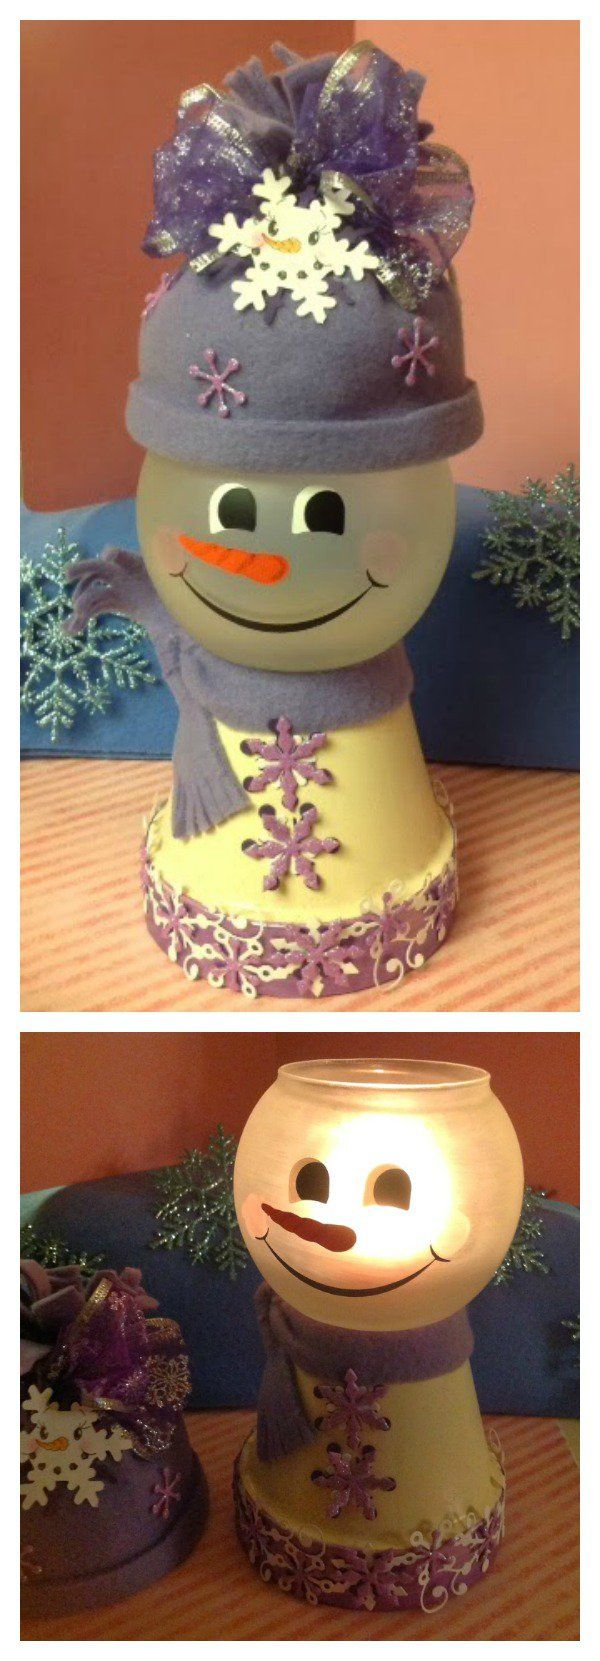 Crafts with clay pots - 10 Creative Clay Pot Christmas Craft Ideas